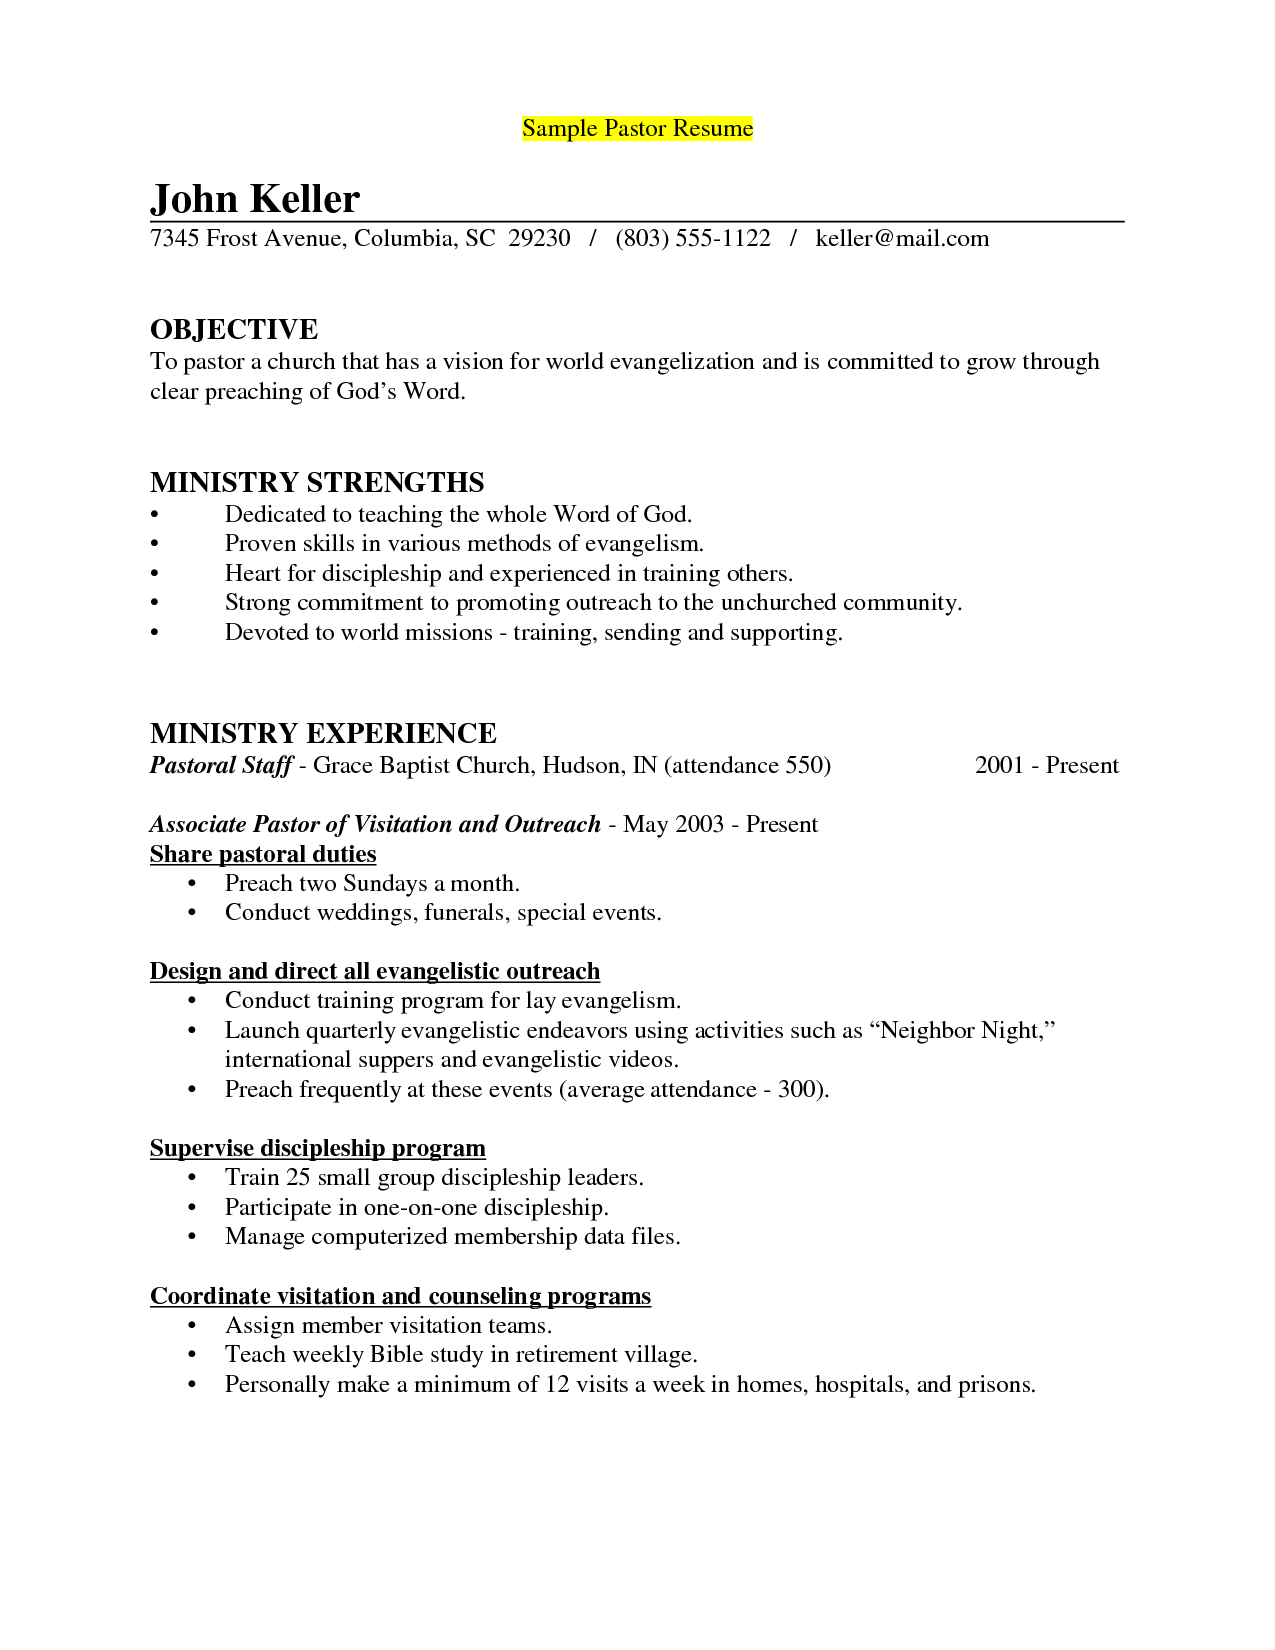 Sample Of A Pastors Resume  Sample Resumes For Senior Pastors